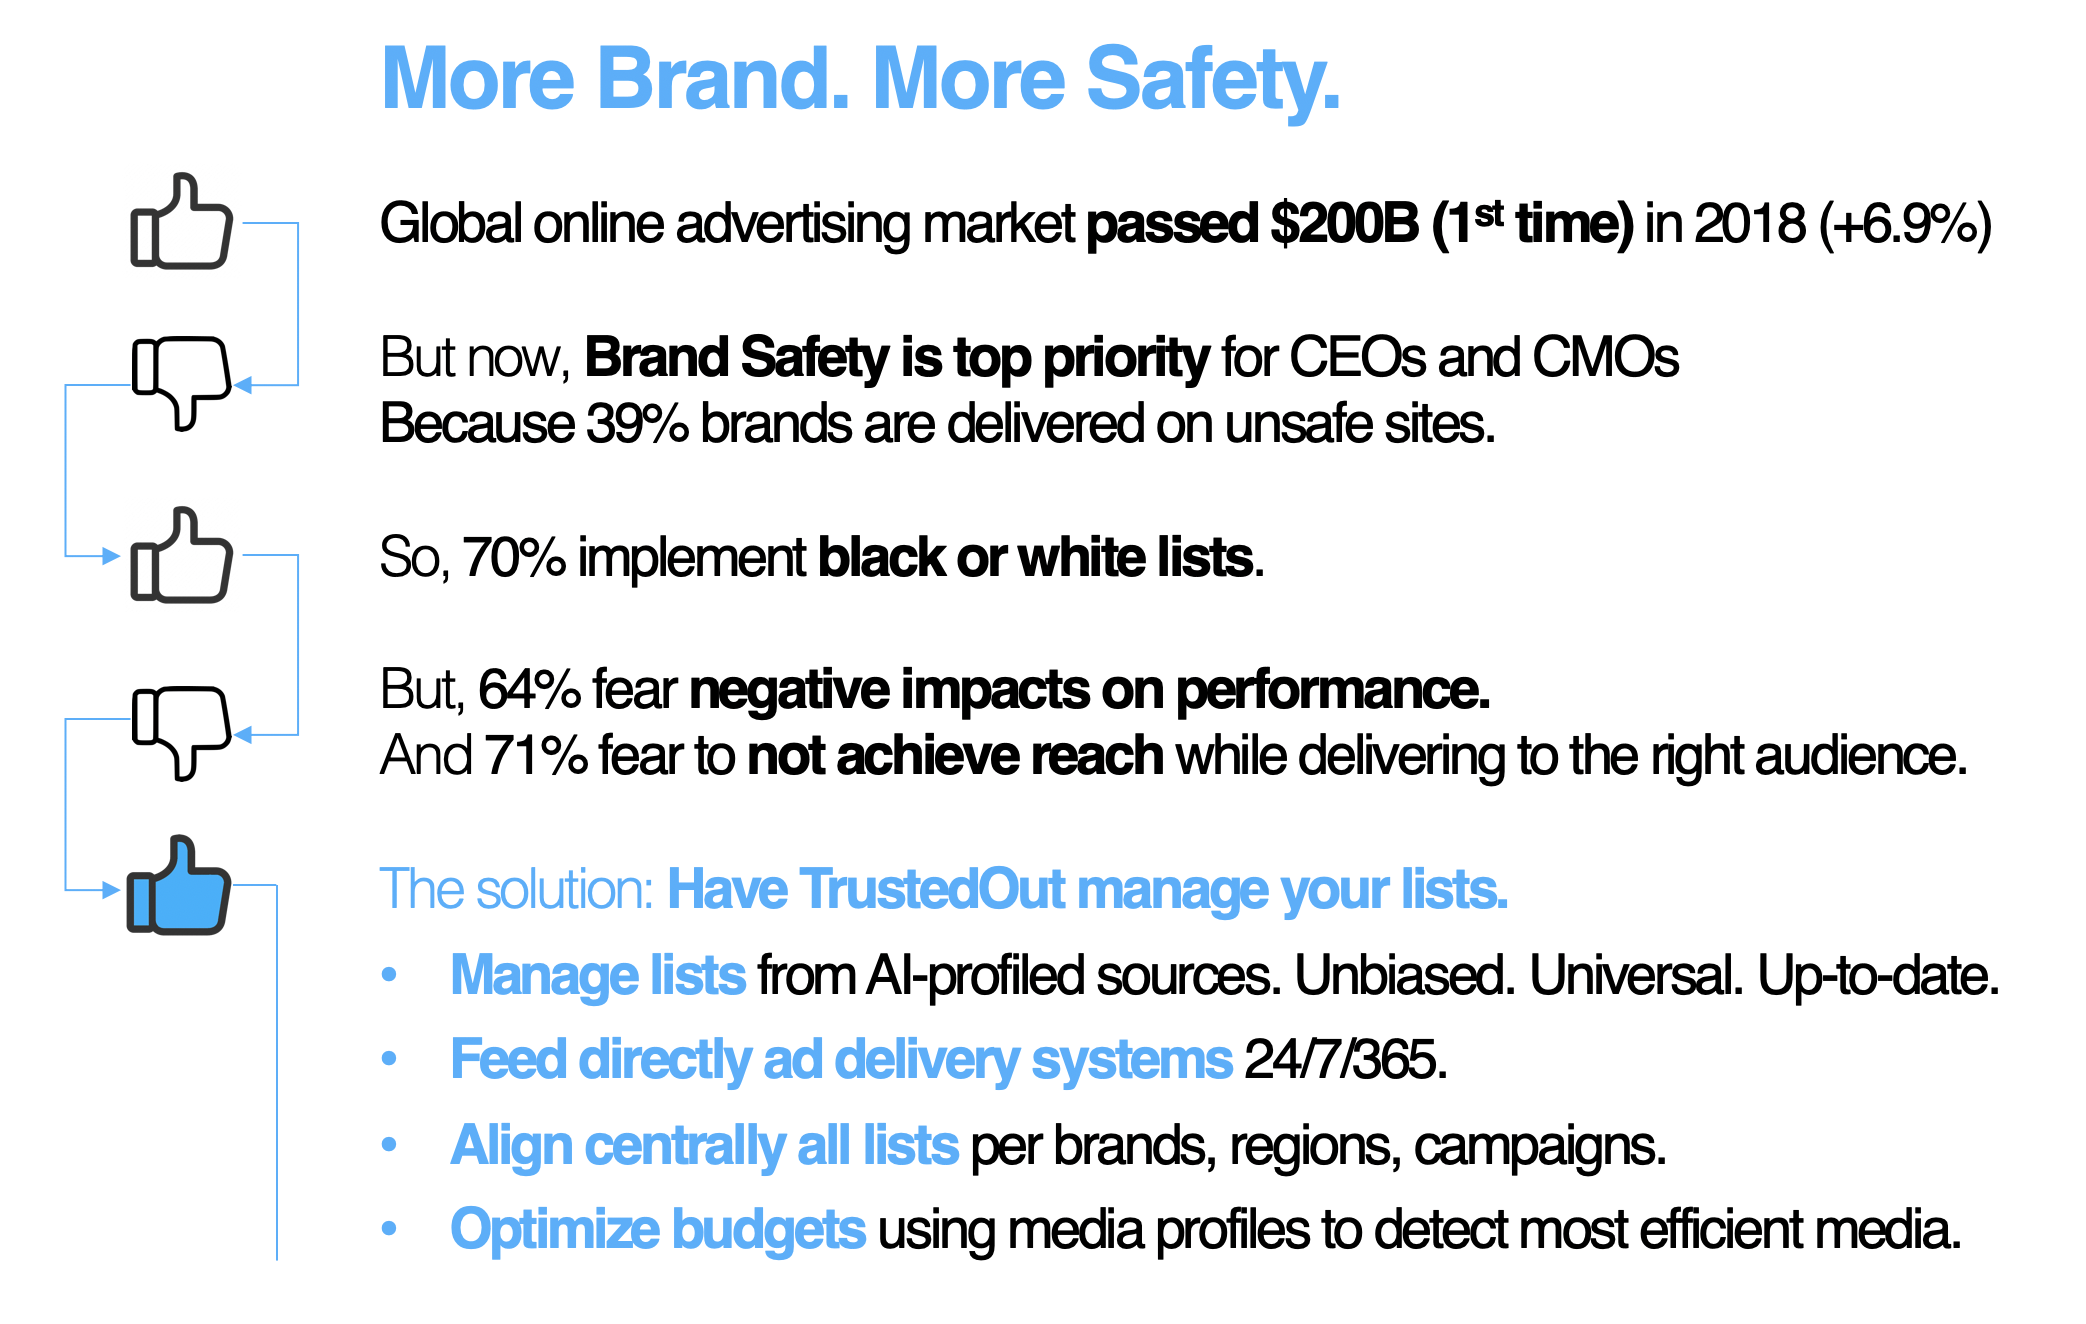 TrustedOut to fix Brand Safety